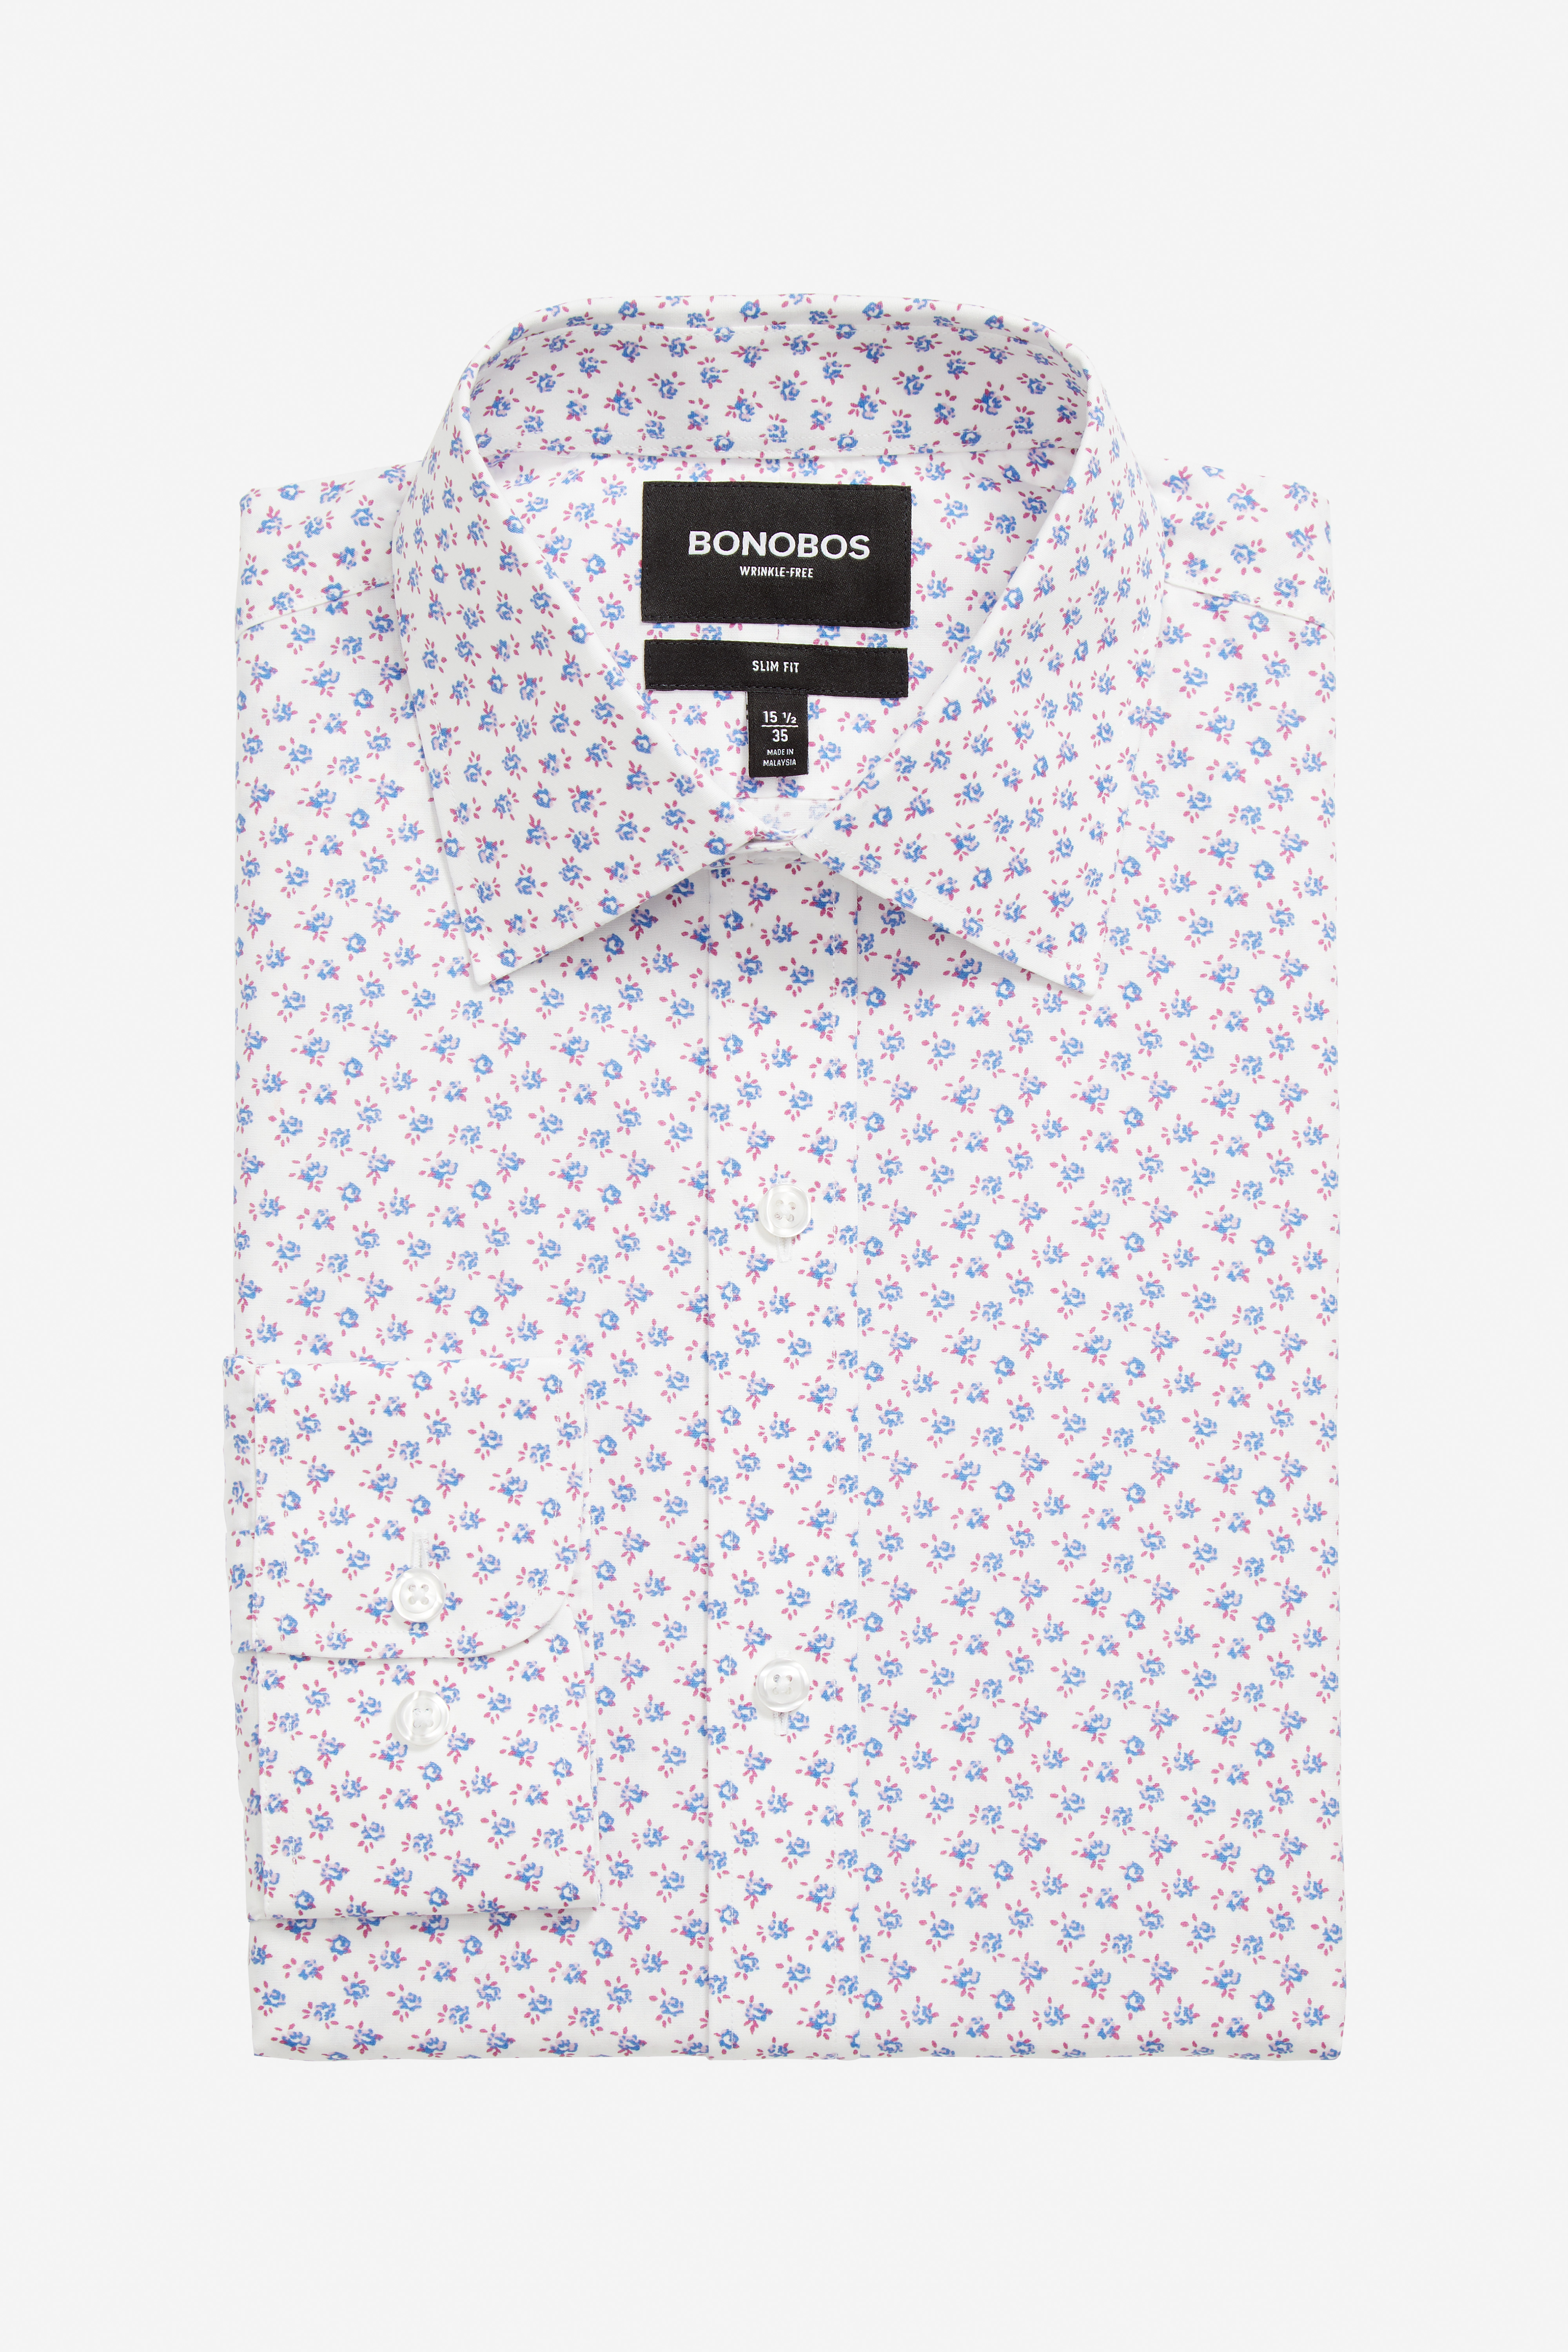 81bb9756d Bonobos: Better Fitting, Better Looking Men's Clothing & Accessories